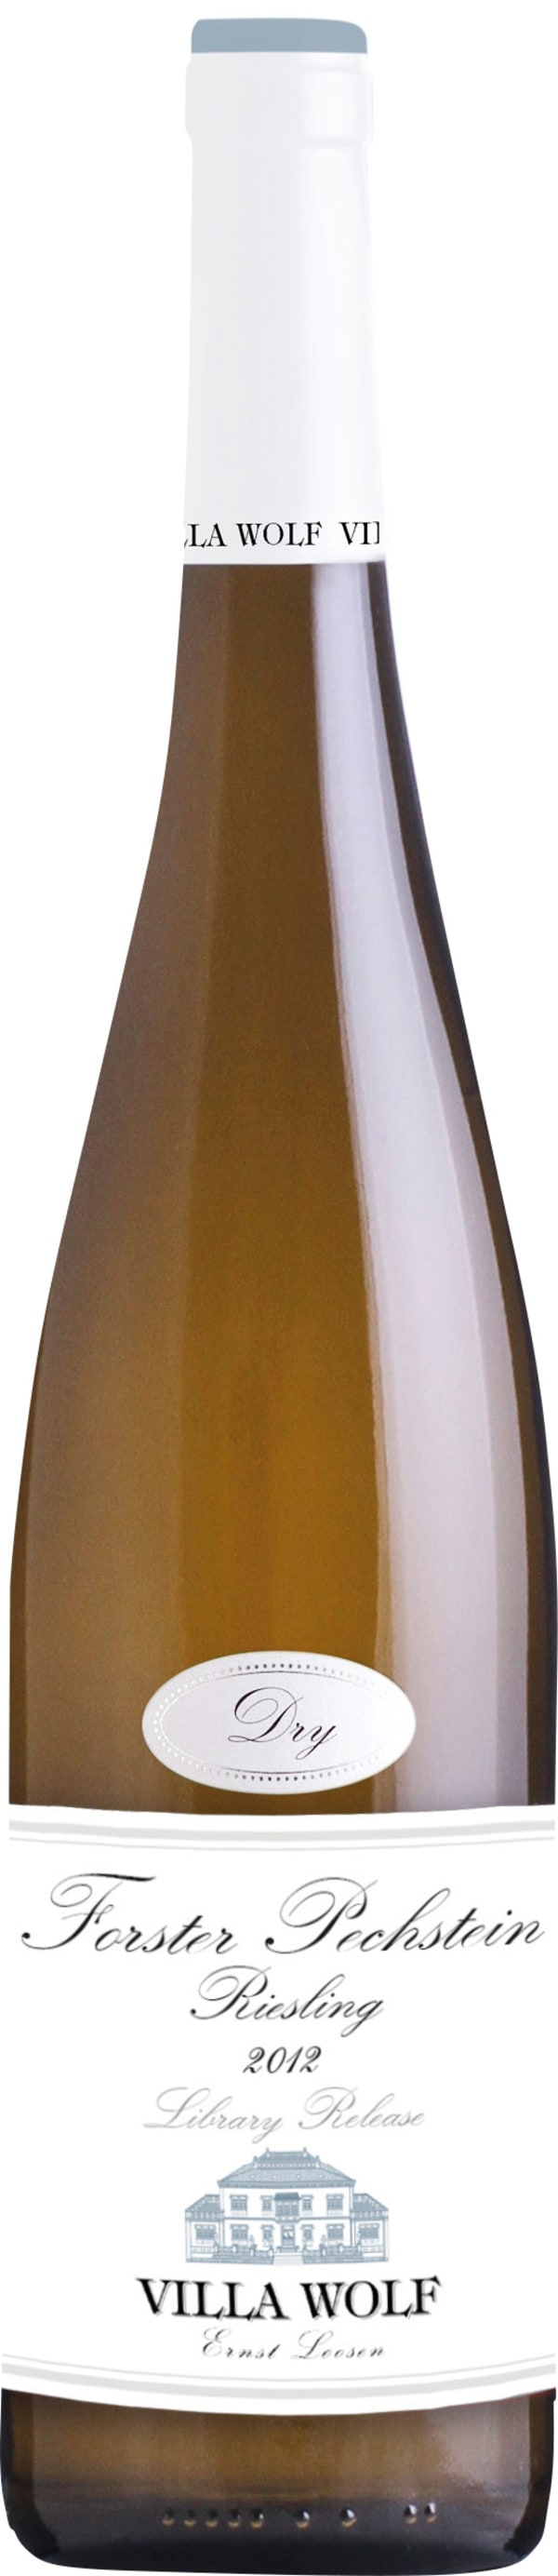 Villa Wolf Library Release Forster Pechstein Riesling Dry 2012